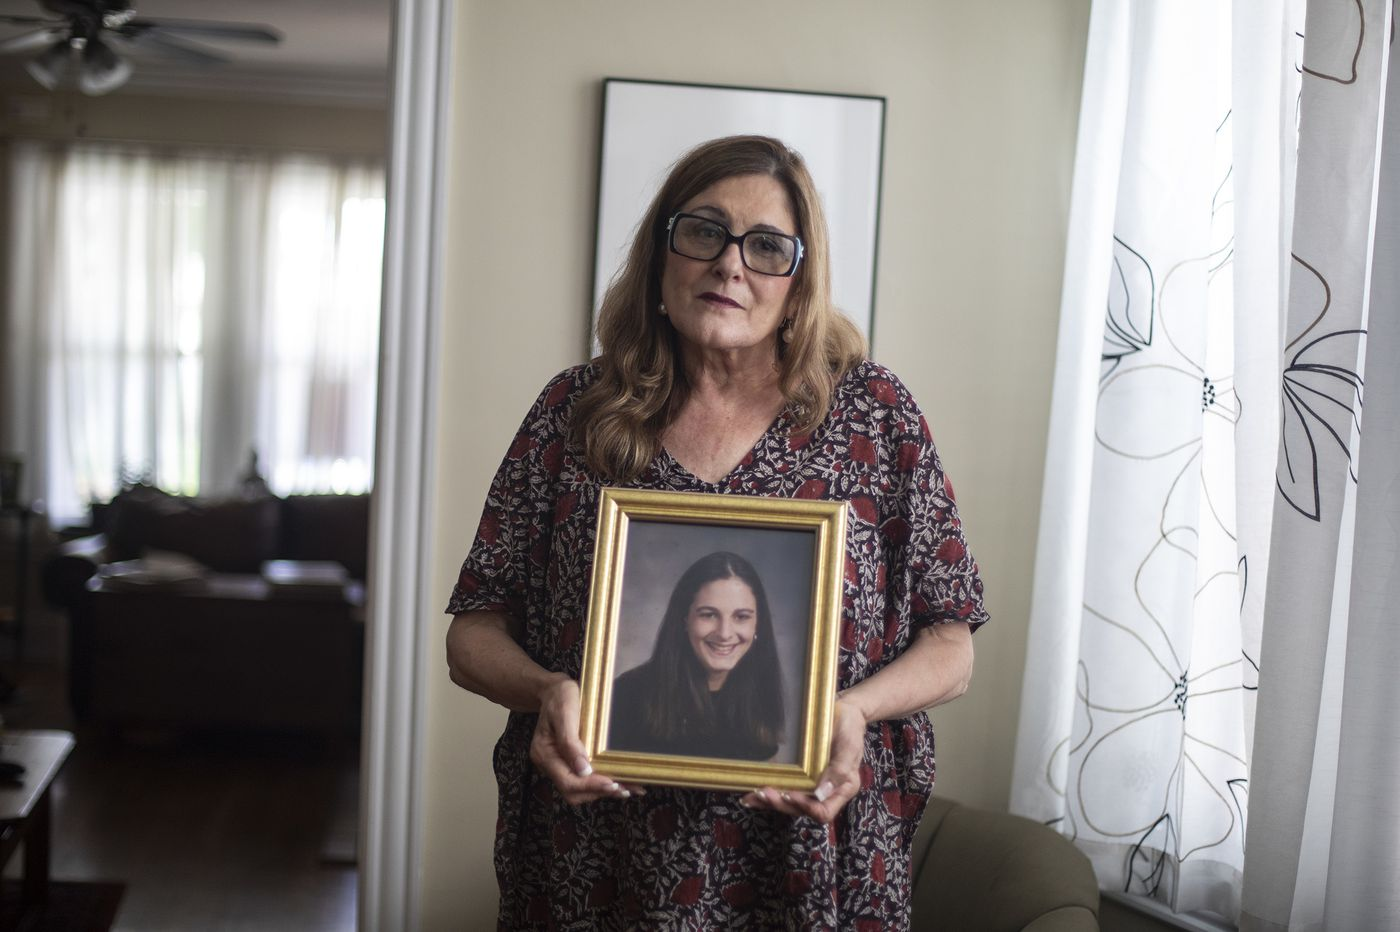 A Philly mother's searing memoir on her daughter's overdose condemns the treatment system that failed her | Mike Newall